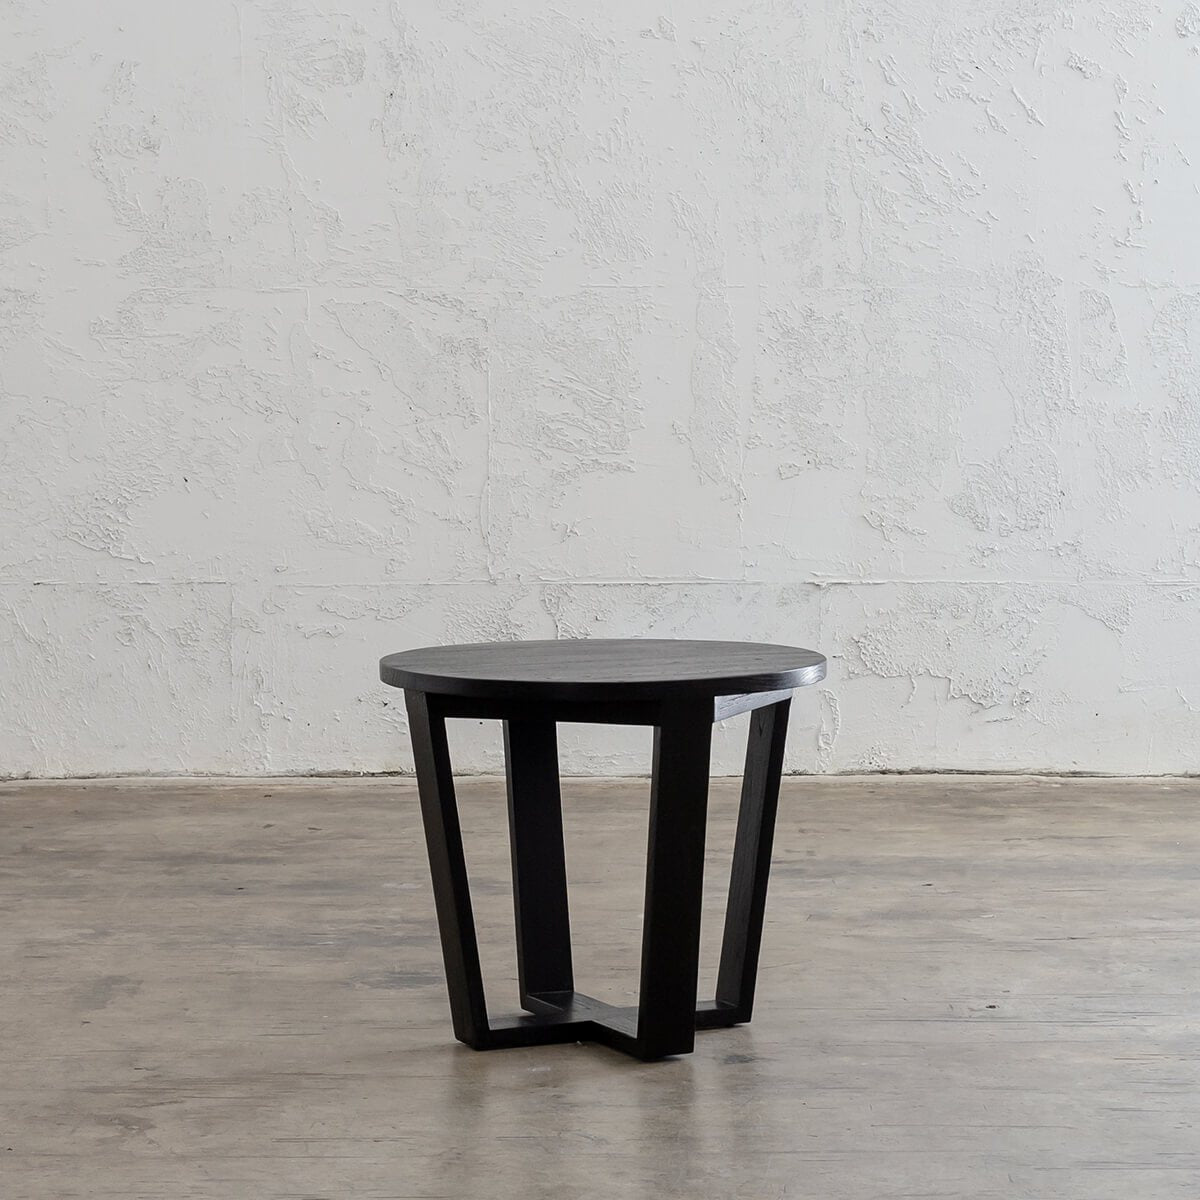 AMARA MID CENTURY TIMBER TERRACE SIDE TABLE  |  SOLID TOP BLACK | ROUND